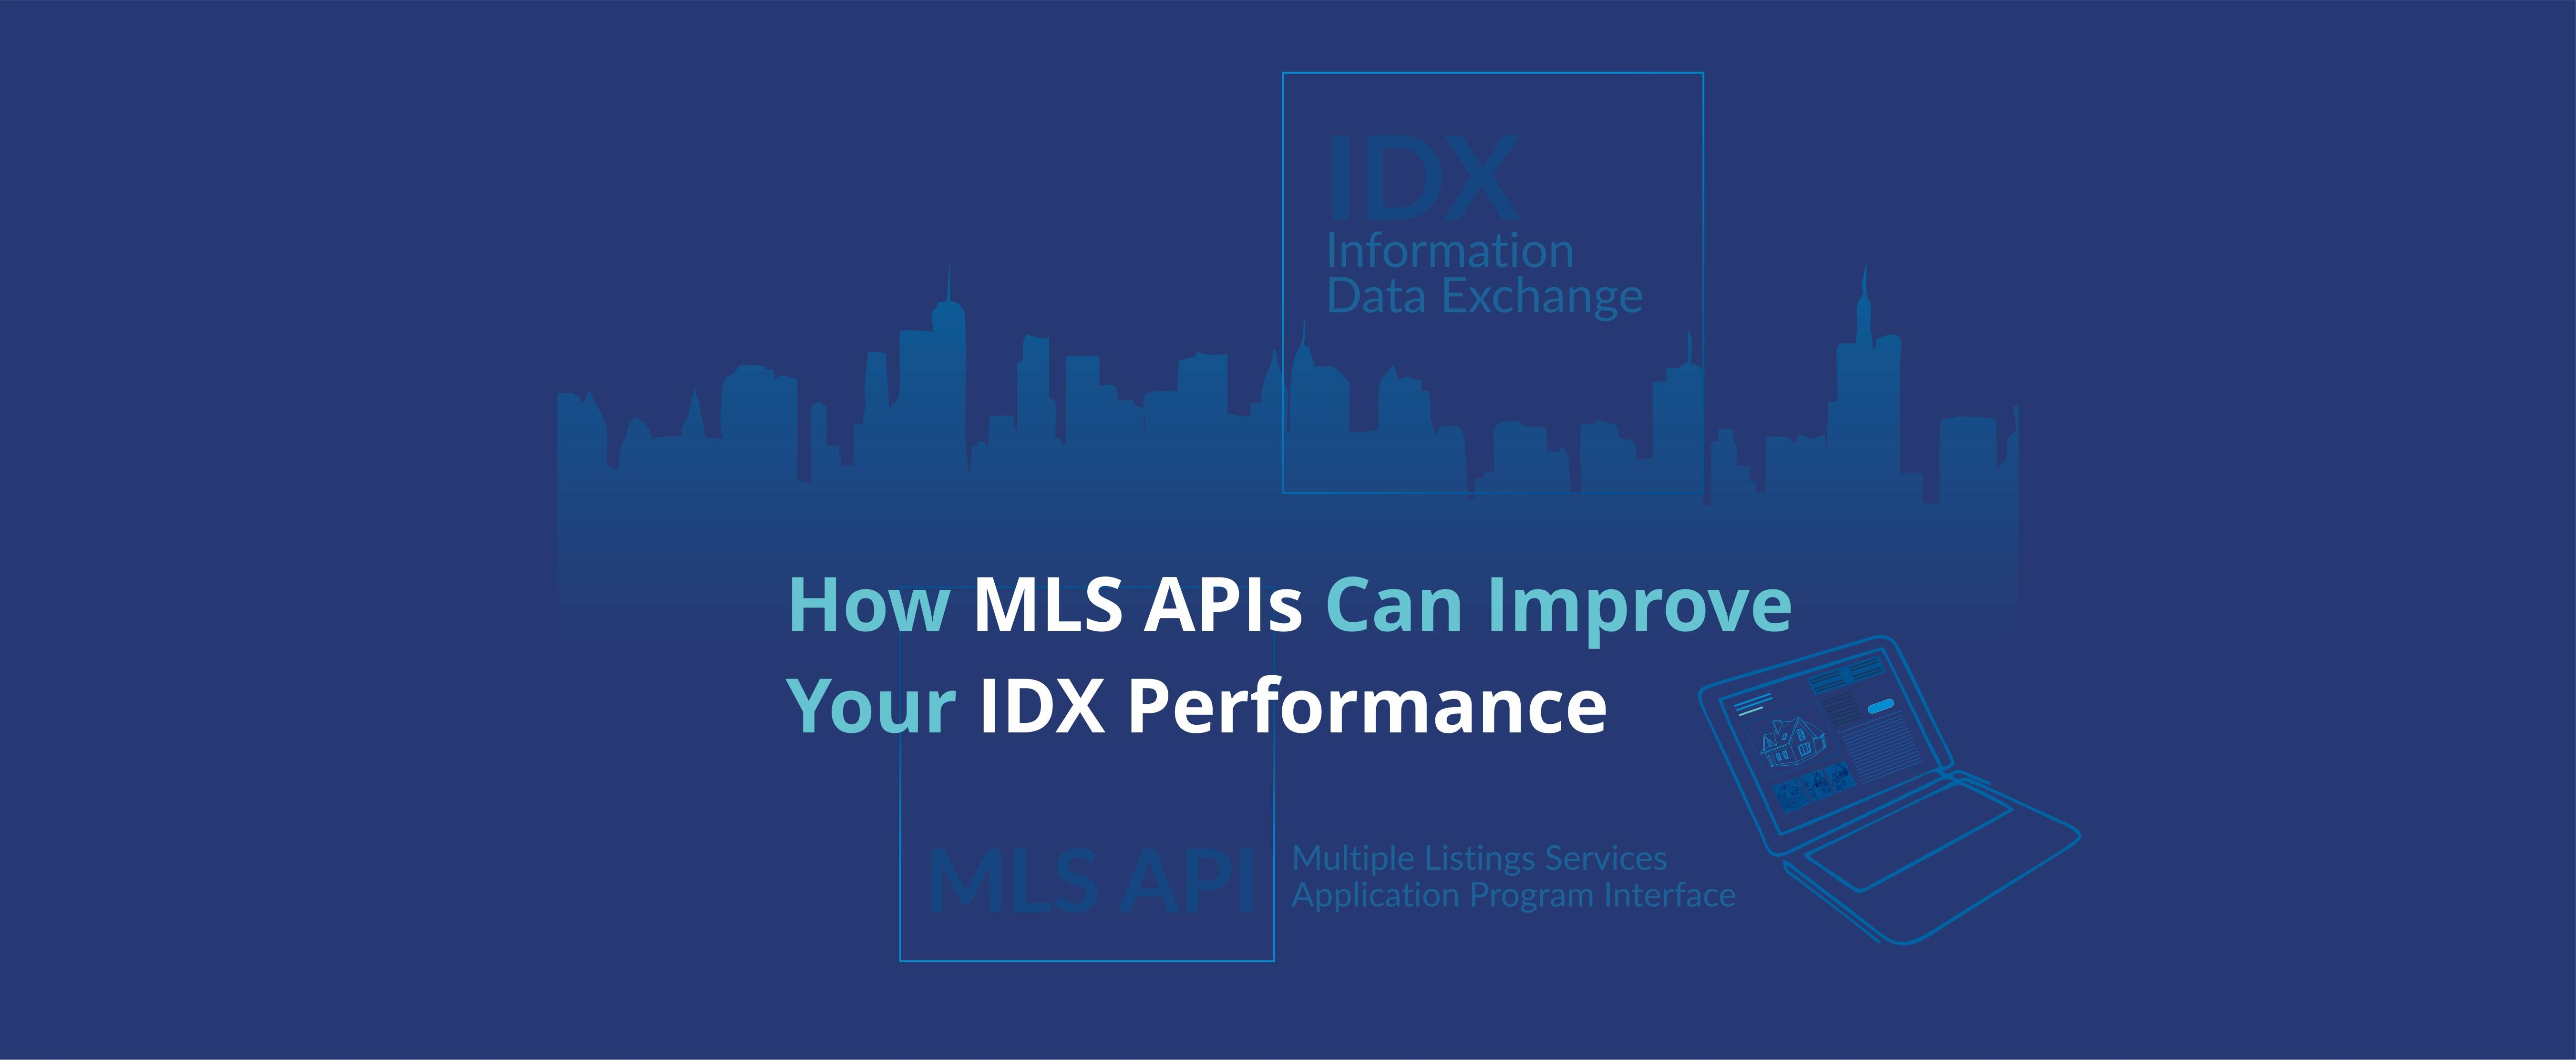 MLS APIs Can Improve Your IDX Performance